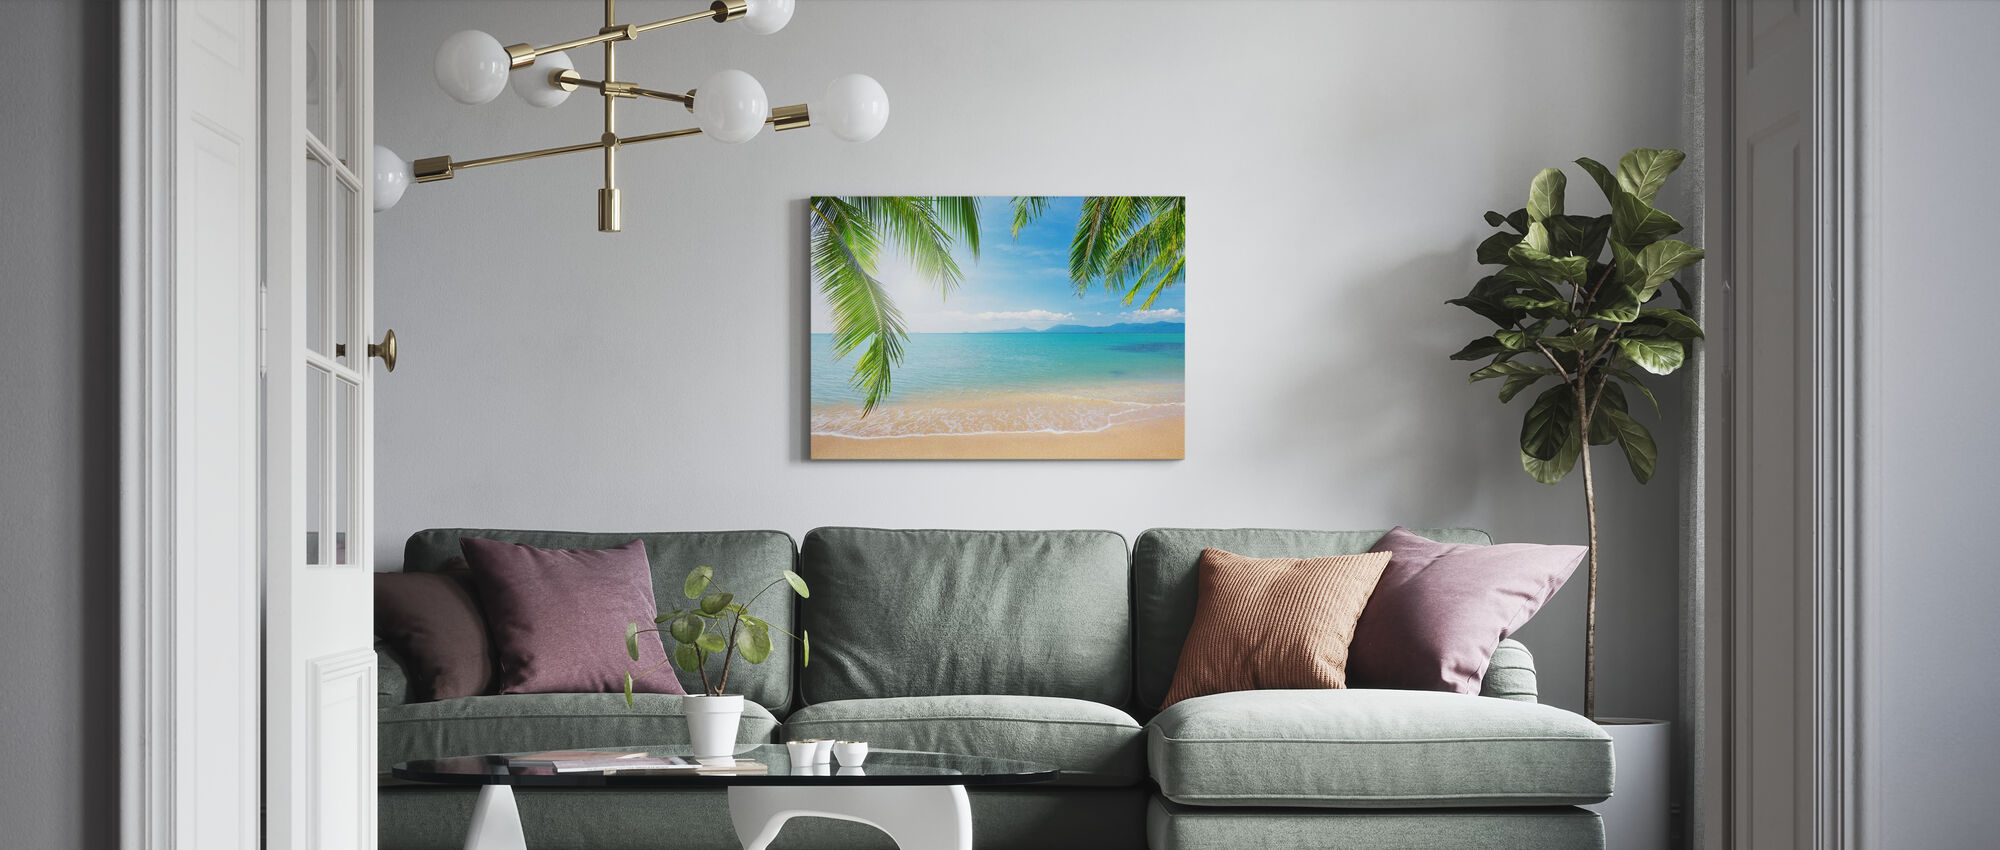 Tropical View from under a Palm Tree - Canvas print - Living Room